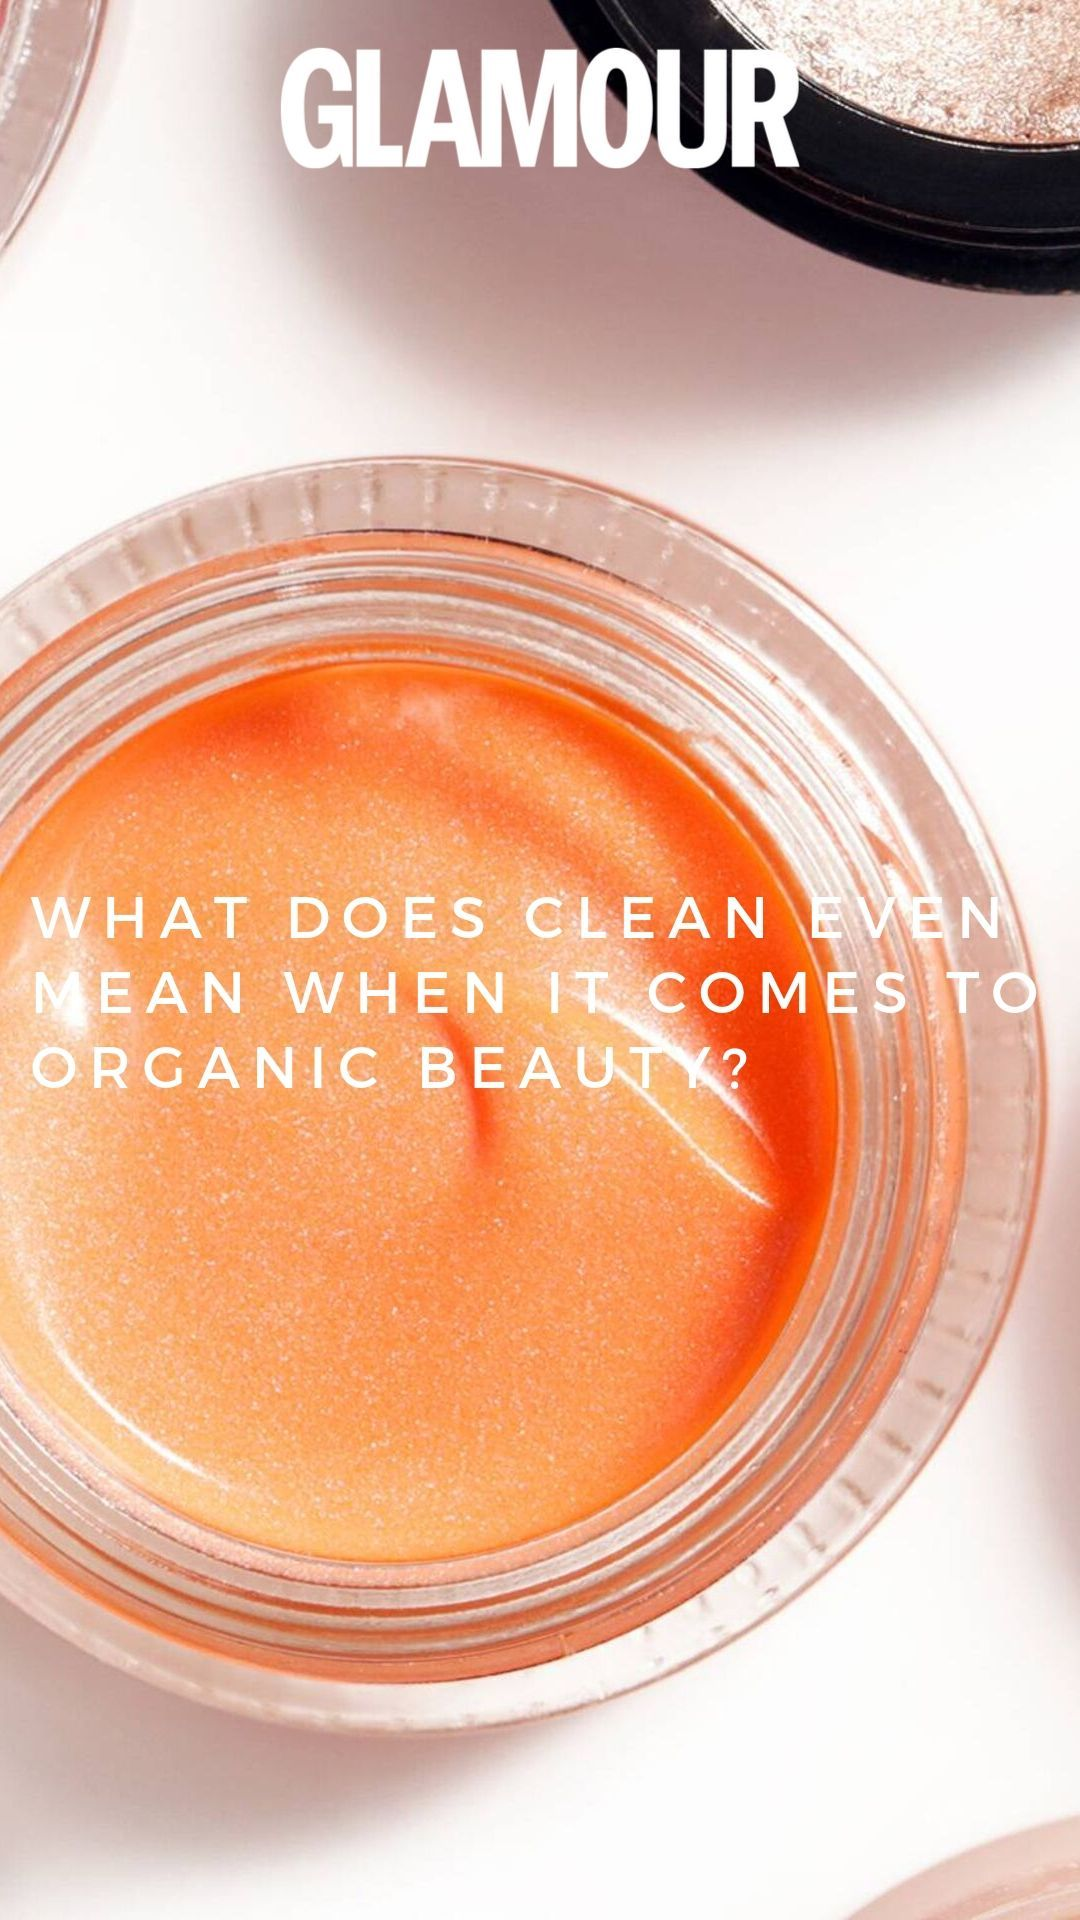 What does clean even mean when it comes to organic beauty